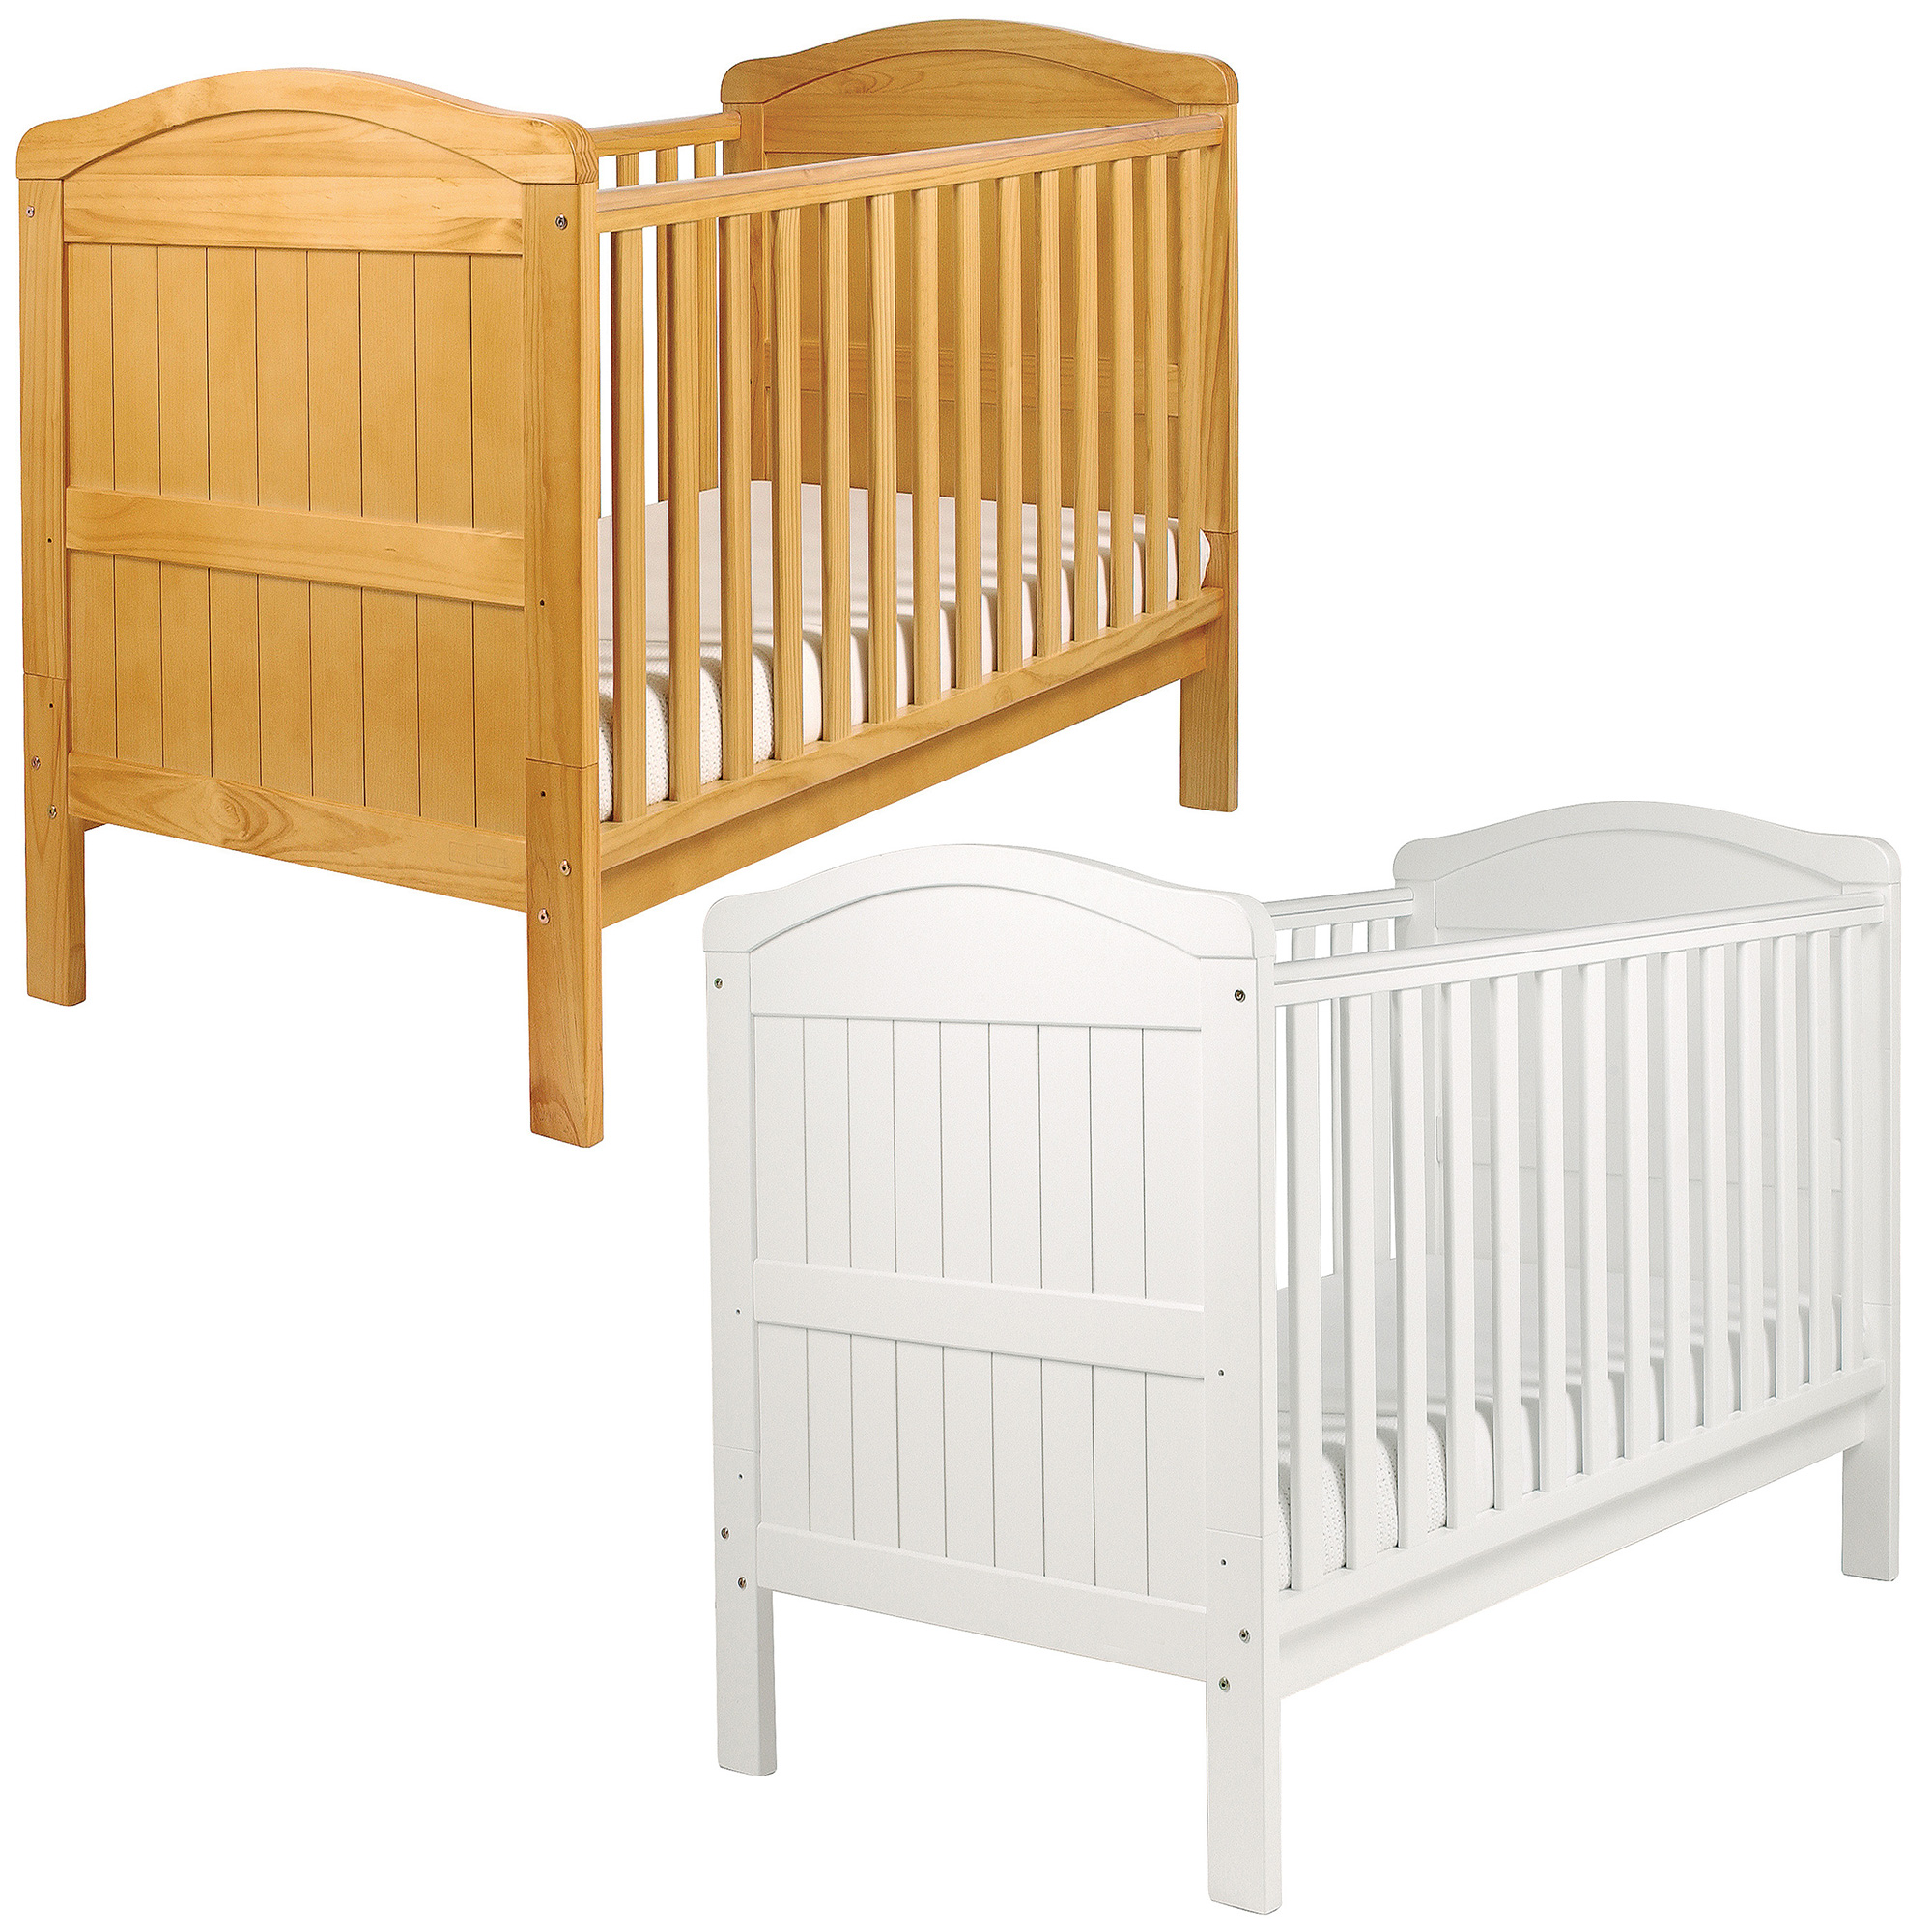 East Coast Country Cot Bed Solid Pine Baby Child Toddler